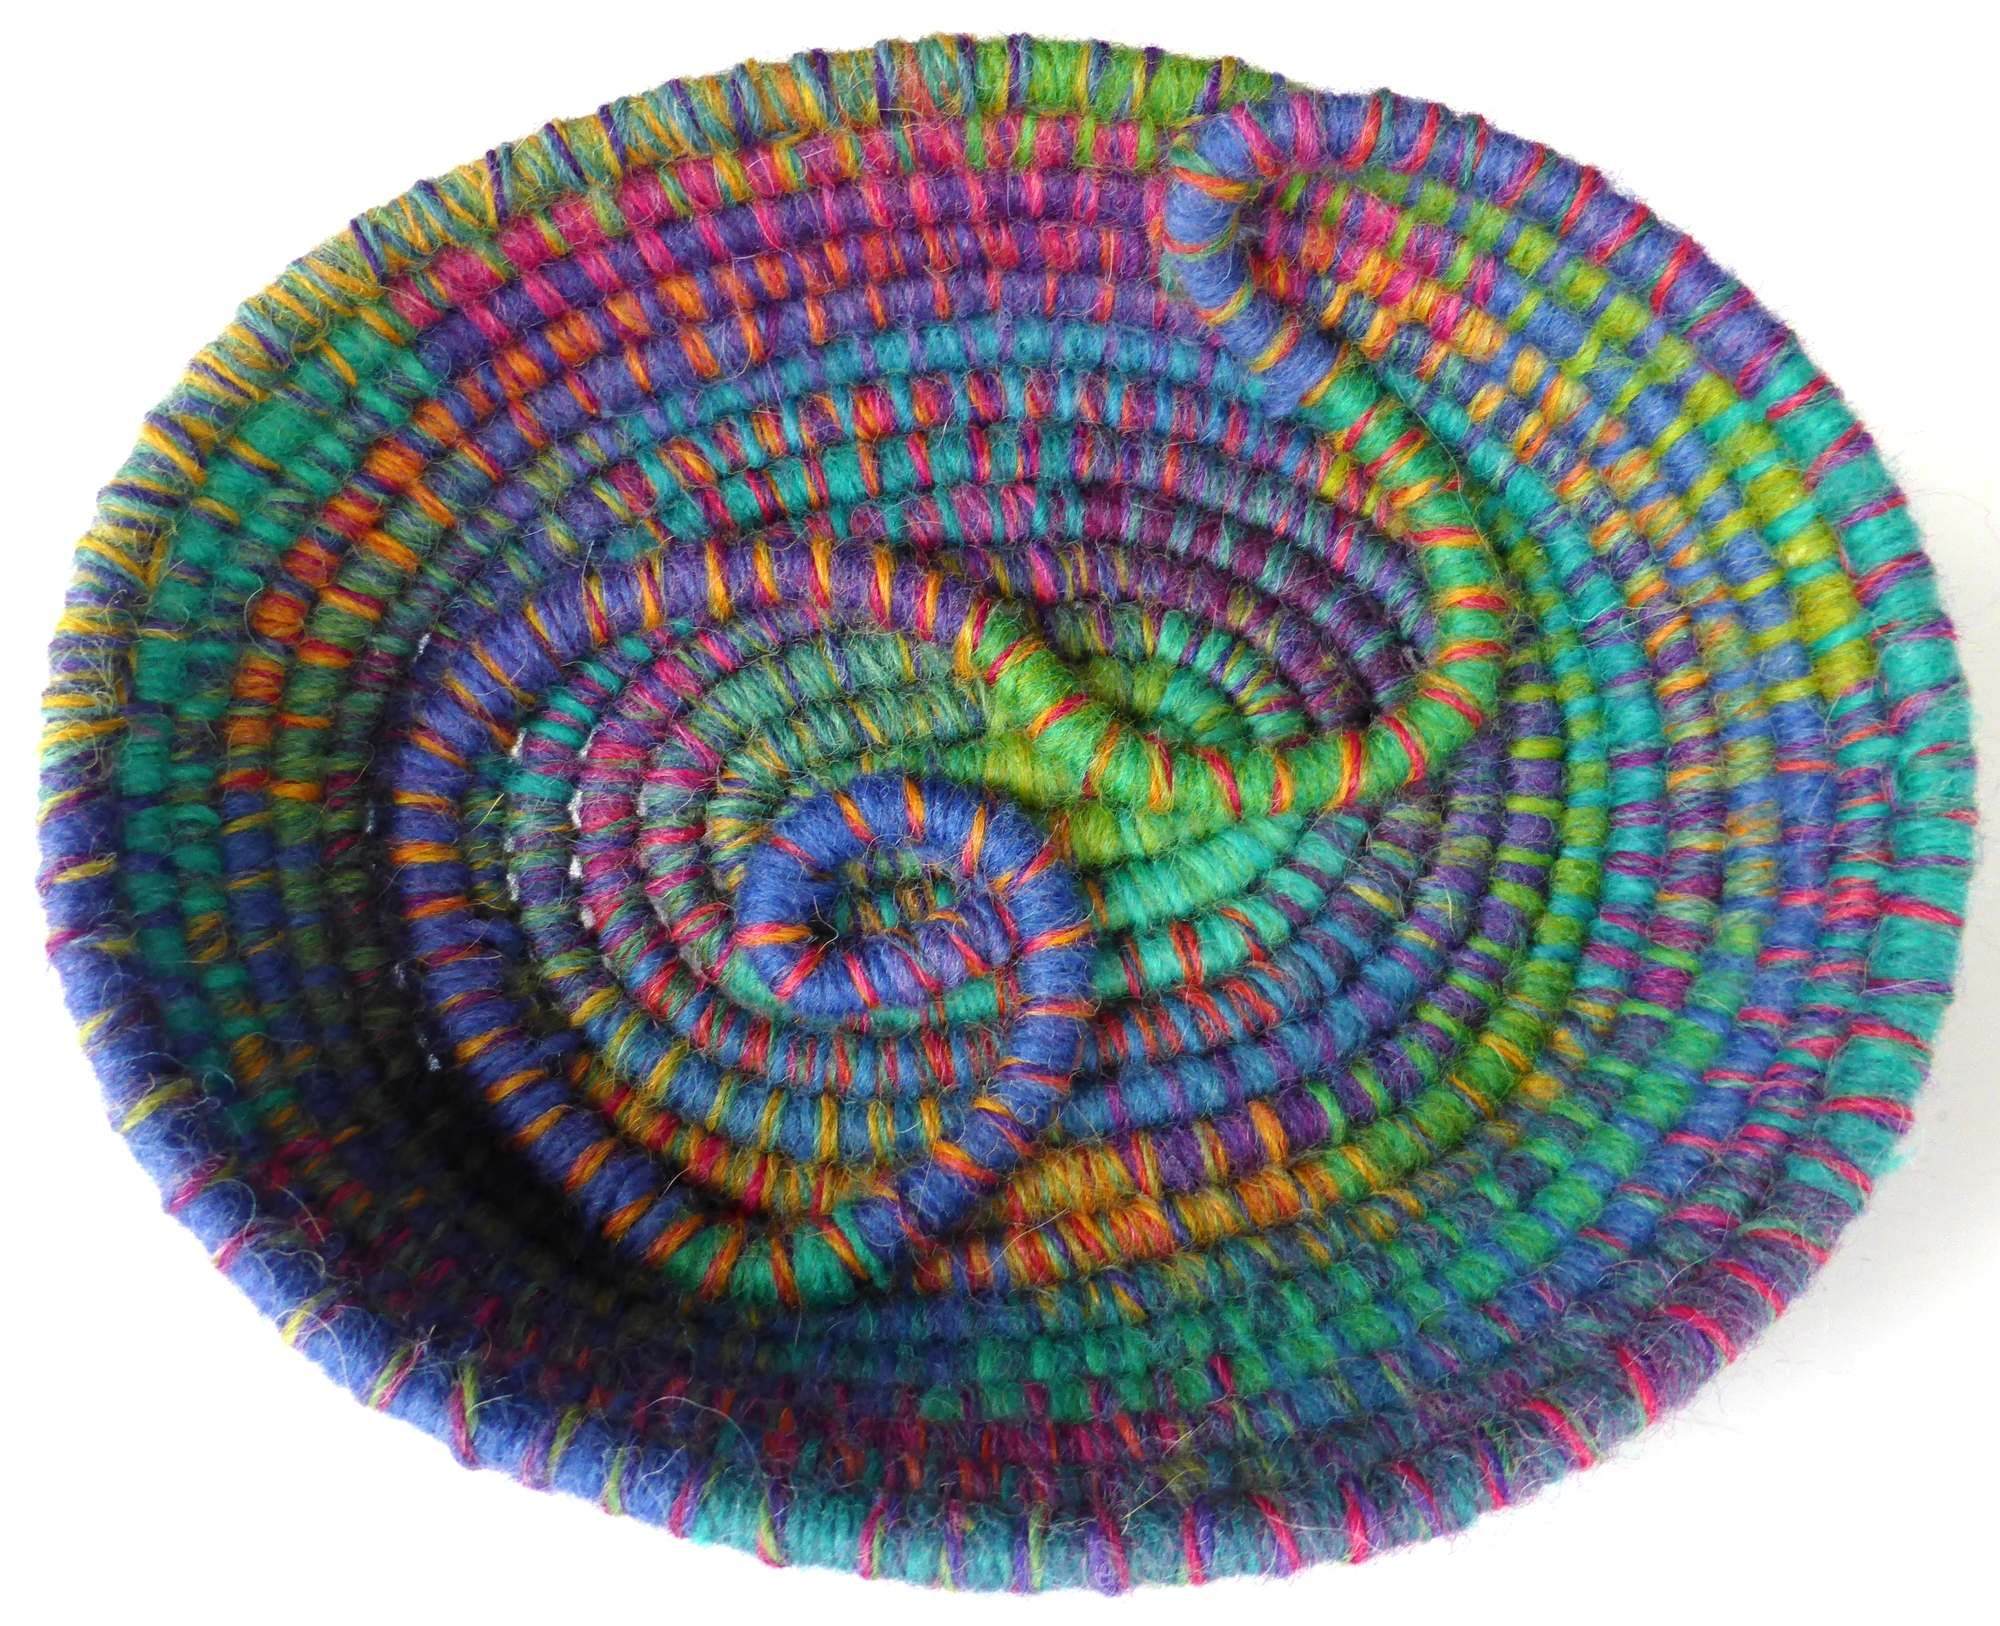 Opal Coil Basket (2014) Artwork by Andrea McCallum by Andrea McCallum